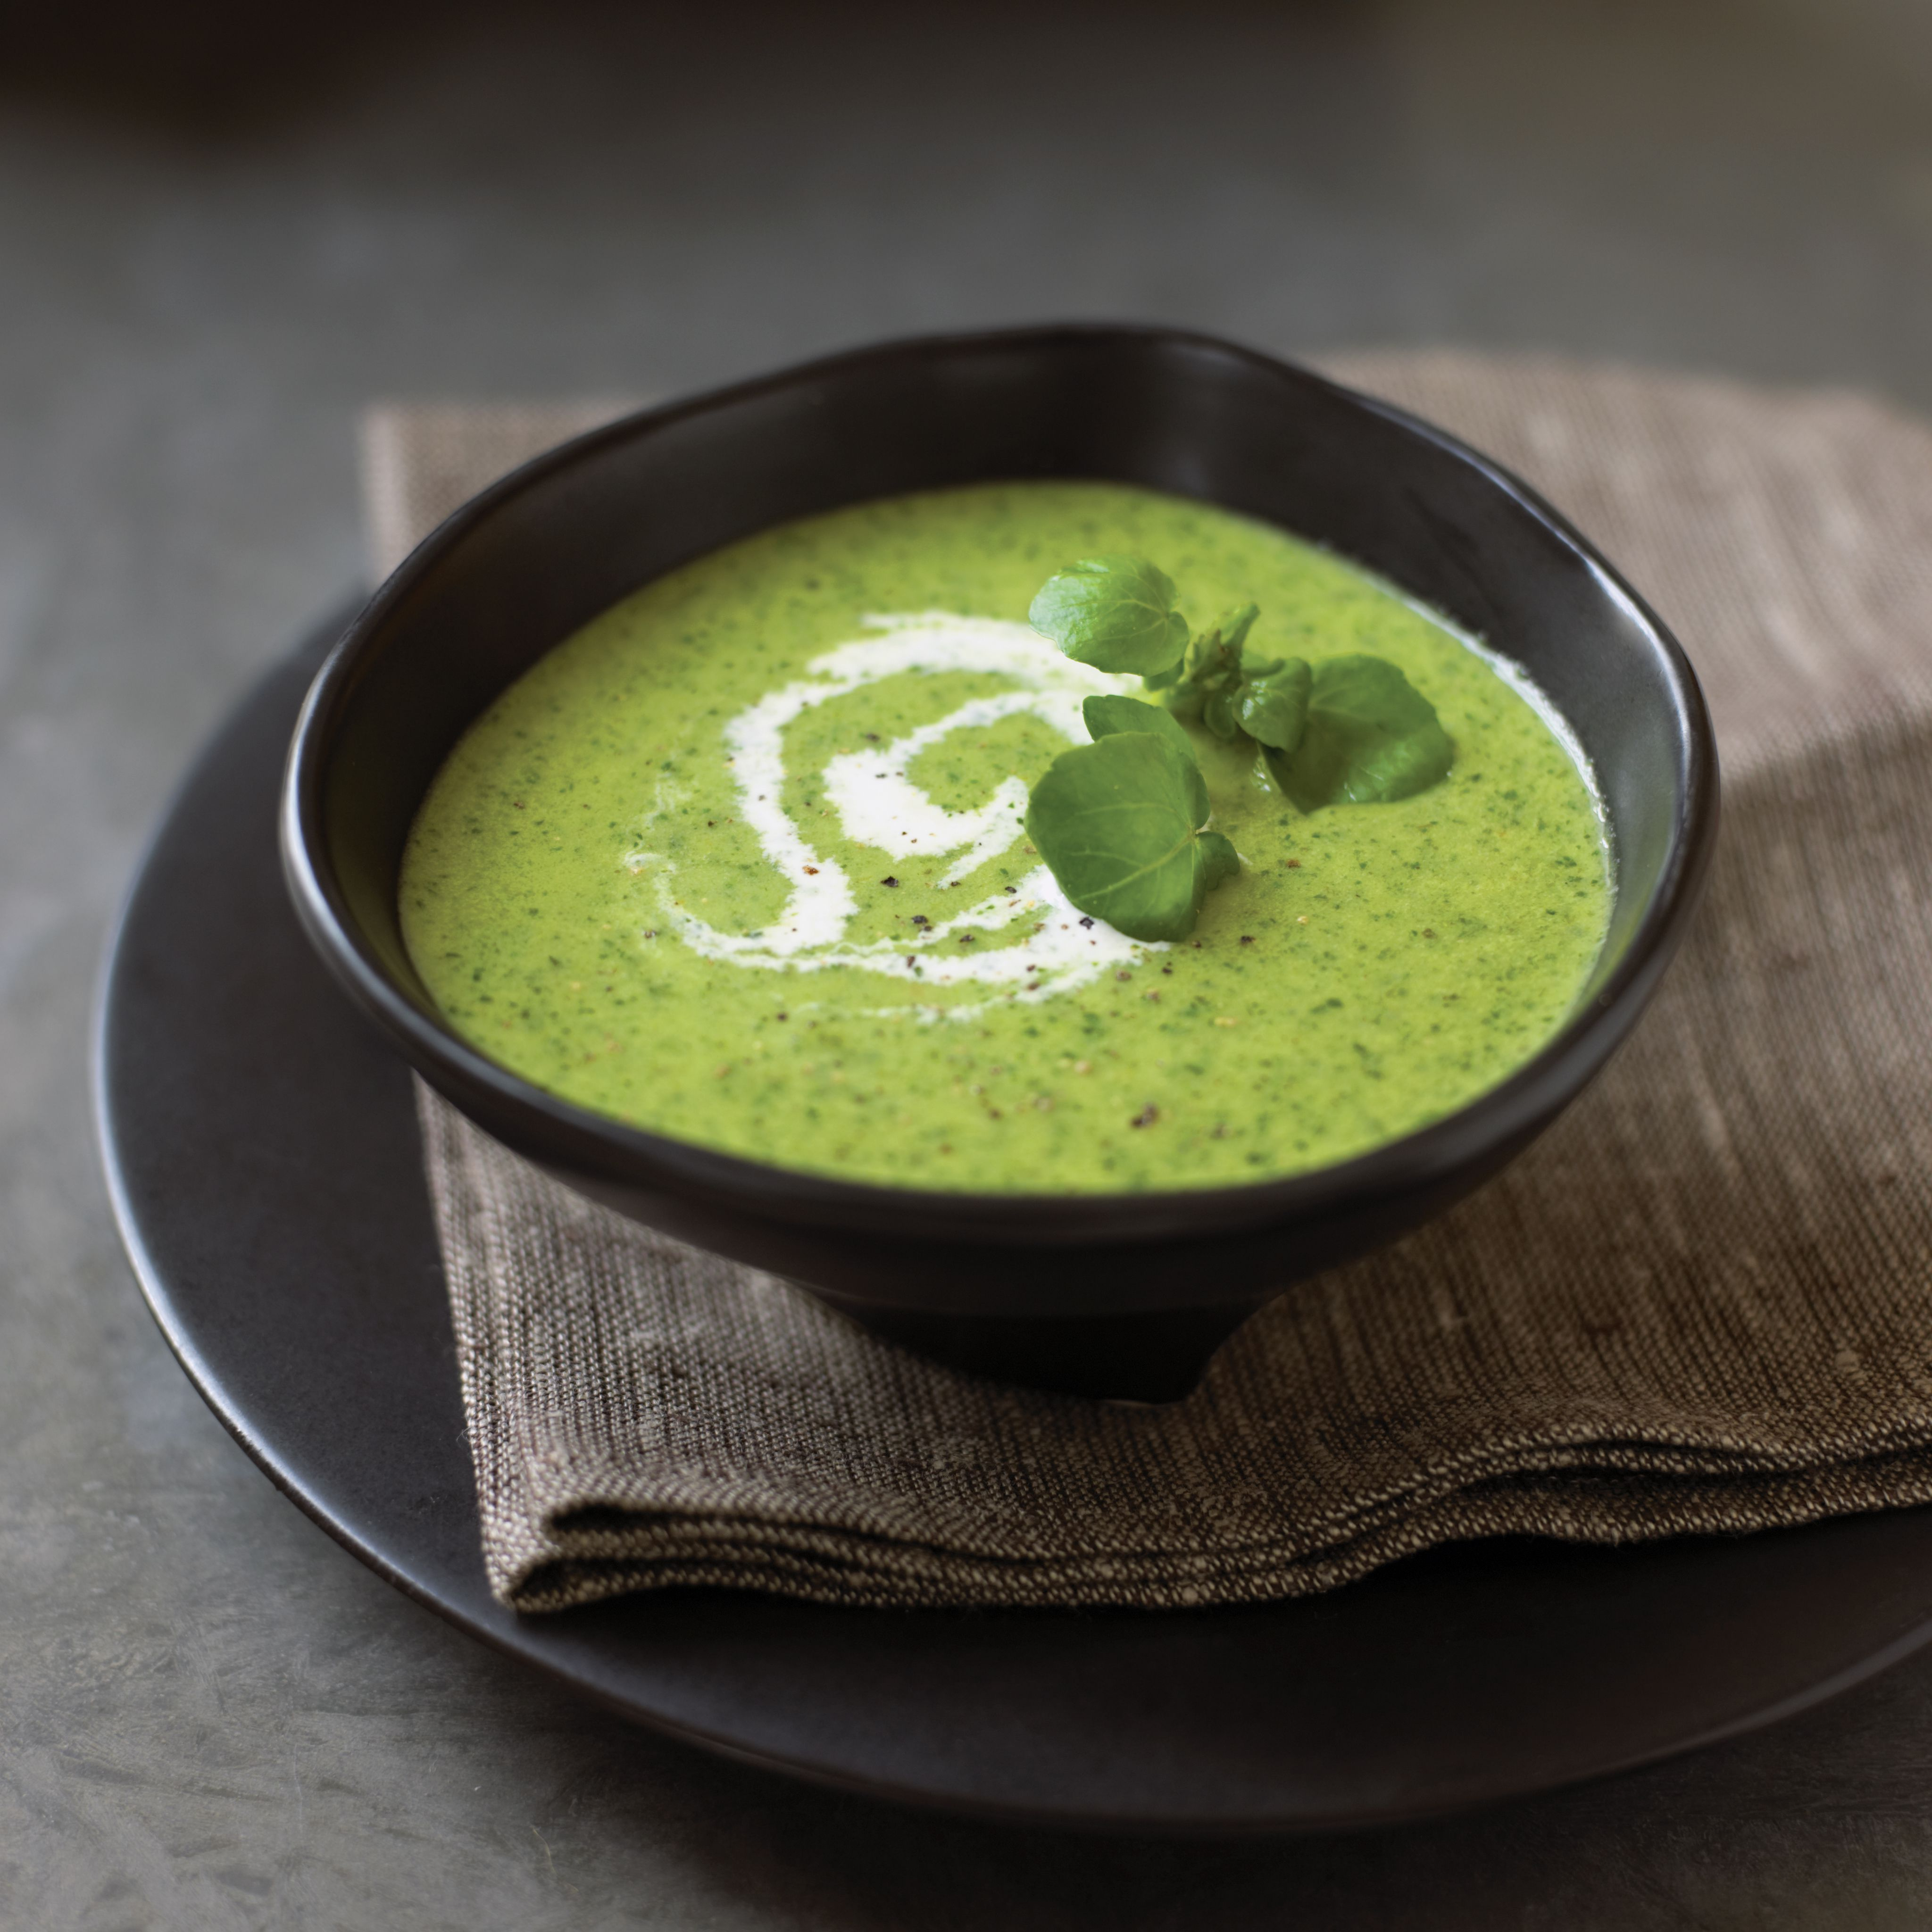 Watercress soup with leaves and swirl of cream served in bowl on napkin and plate, close-up